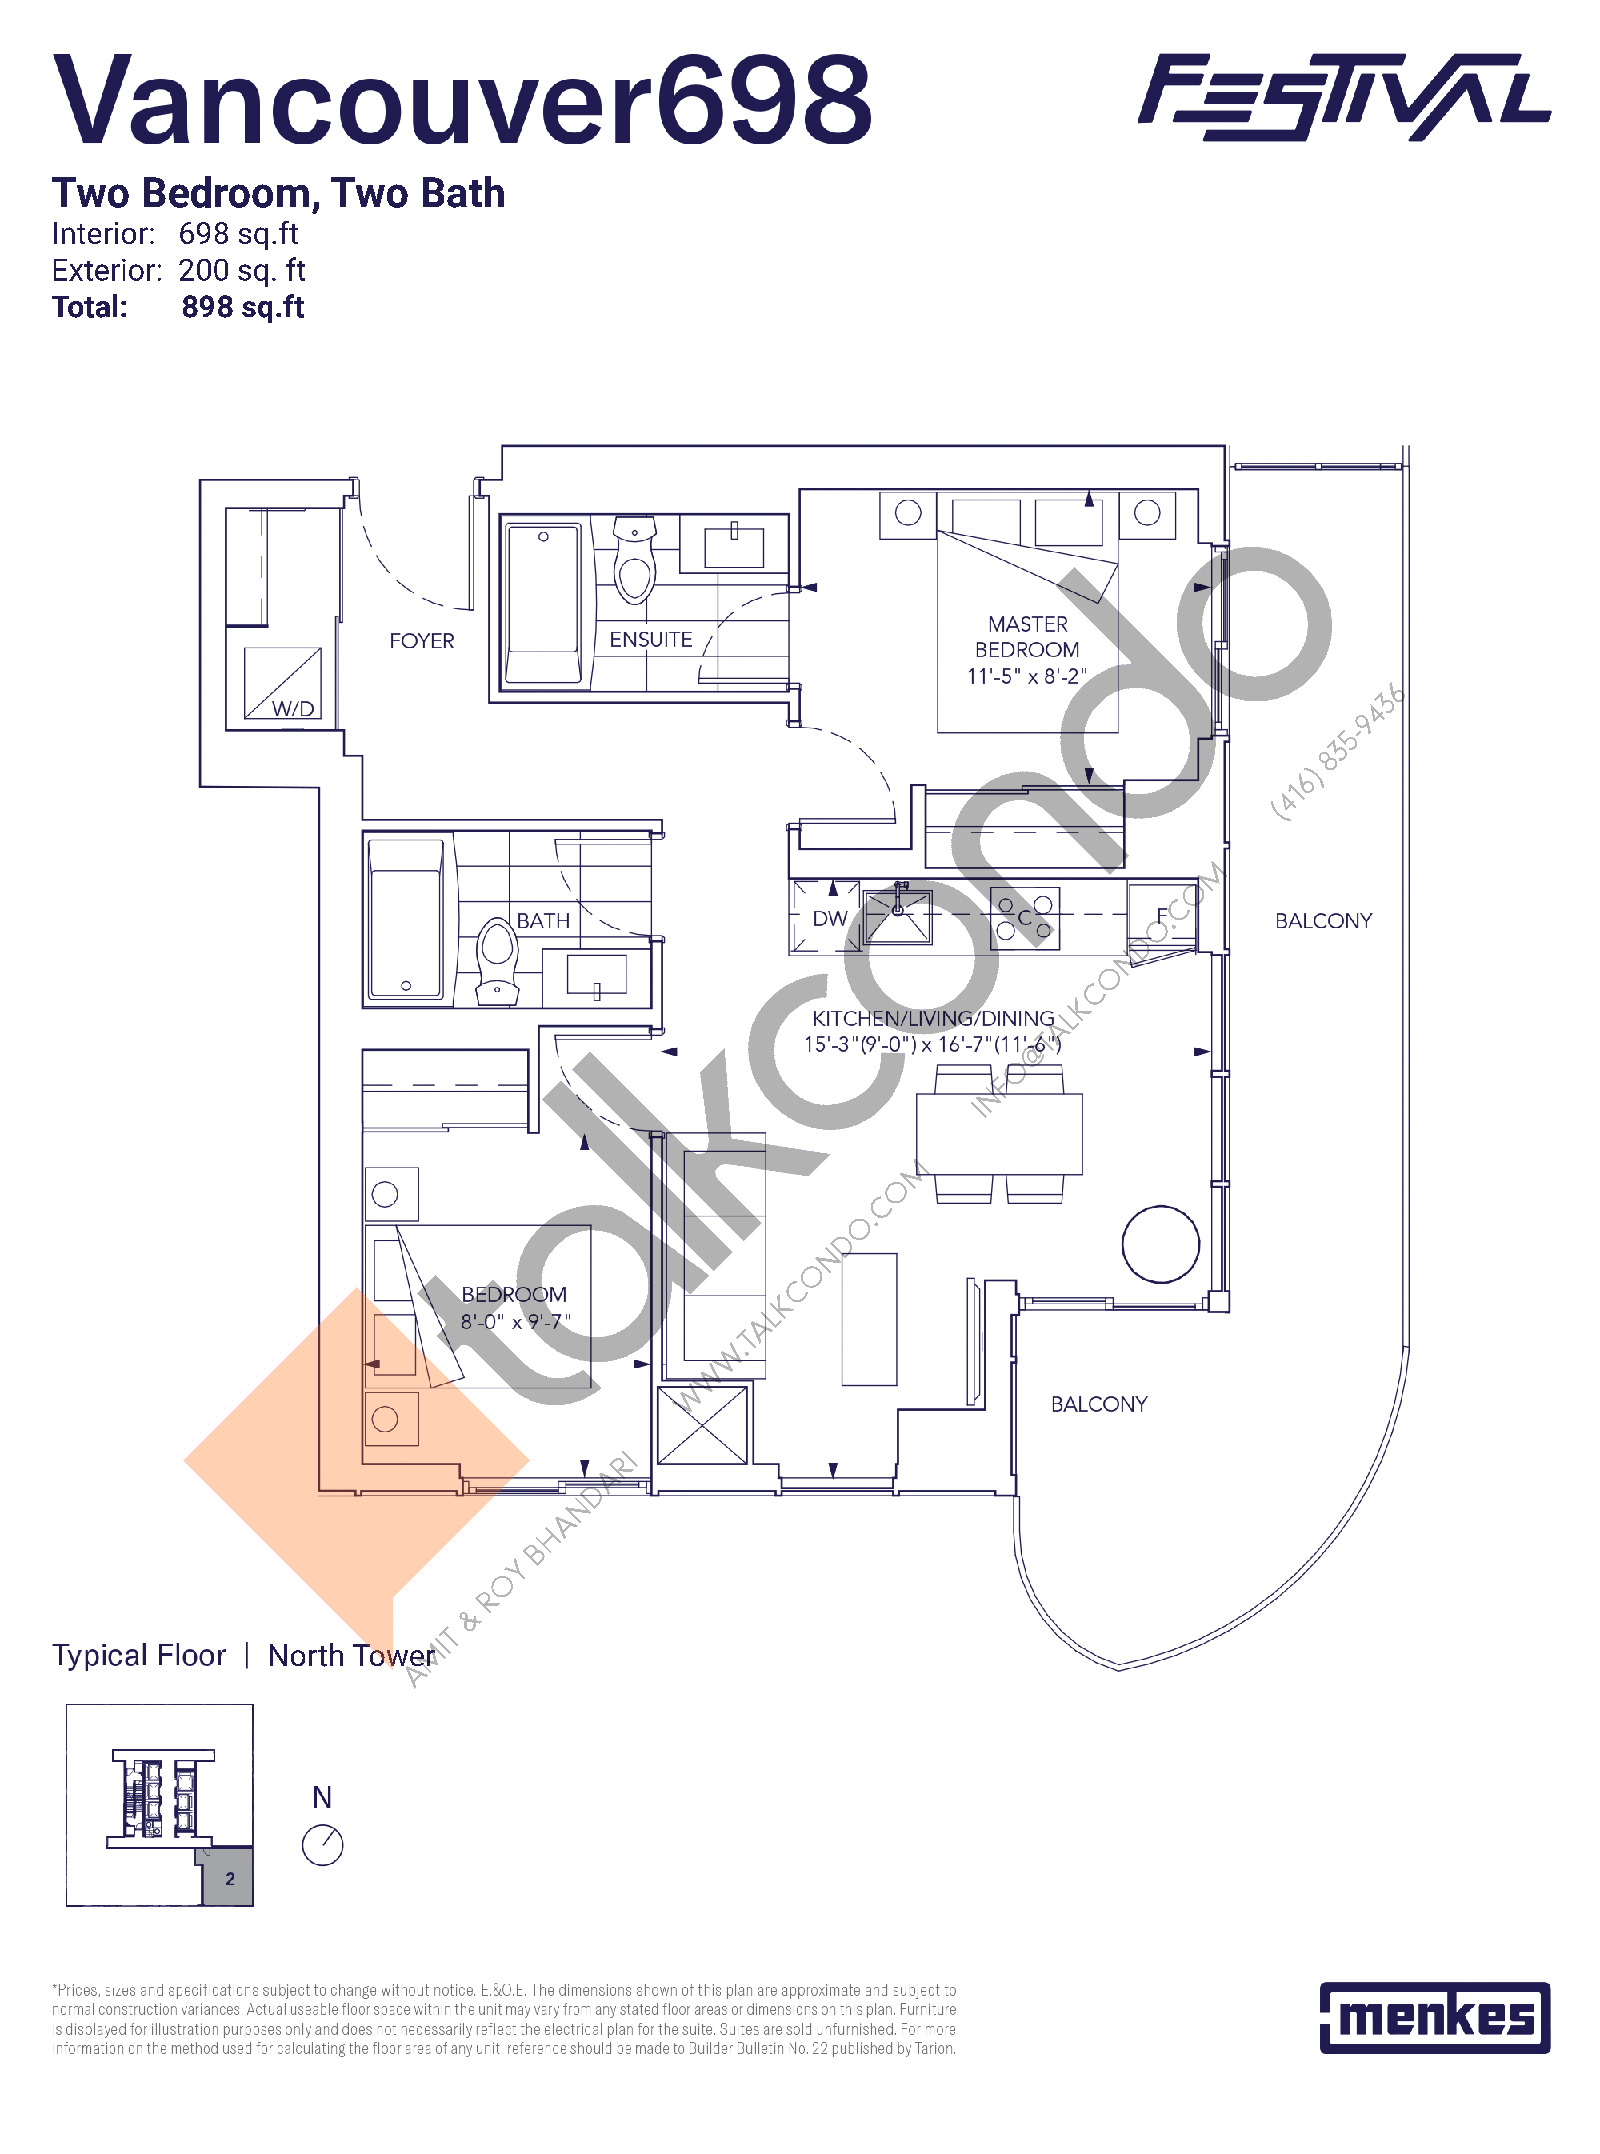 Vancouver 698 Floor Plan at Festival Condos North Tower - 698 sq.ft